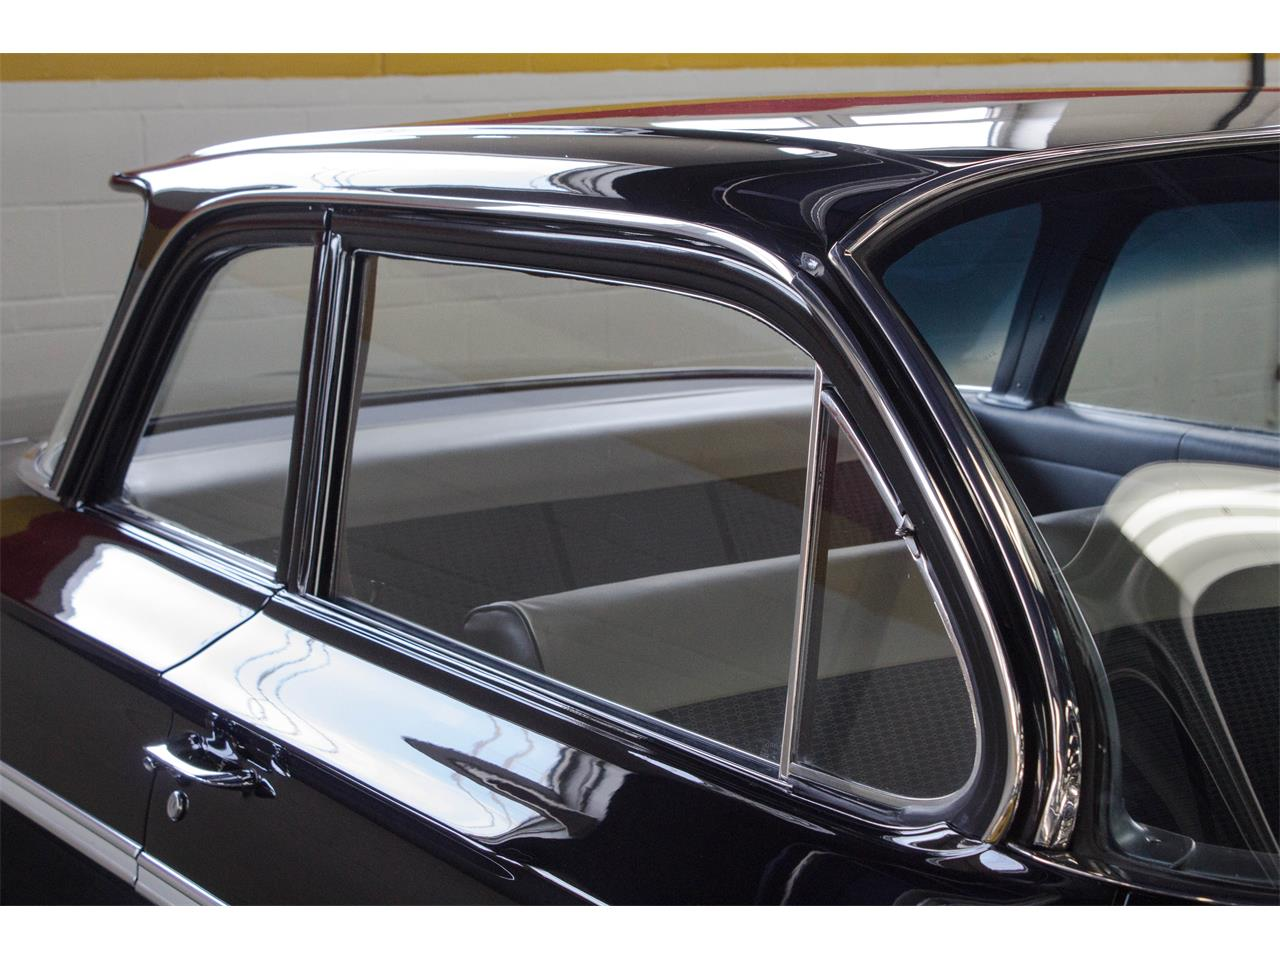 Large Picture of Classic '61 Chevrolet Bel Air located in Montréal Quebec - $72,500.00 Offered by John Scotti Classic Cars - M35A